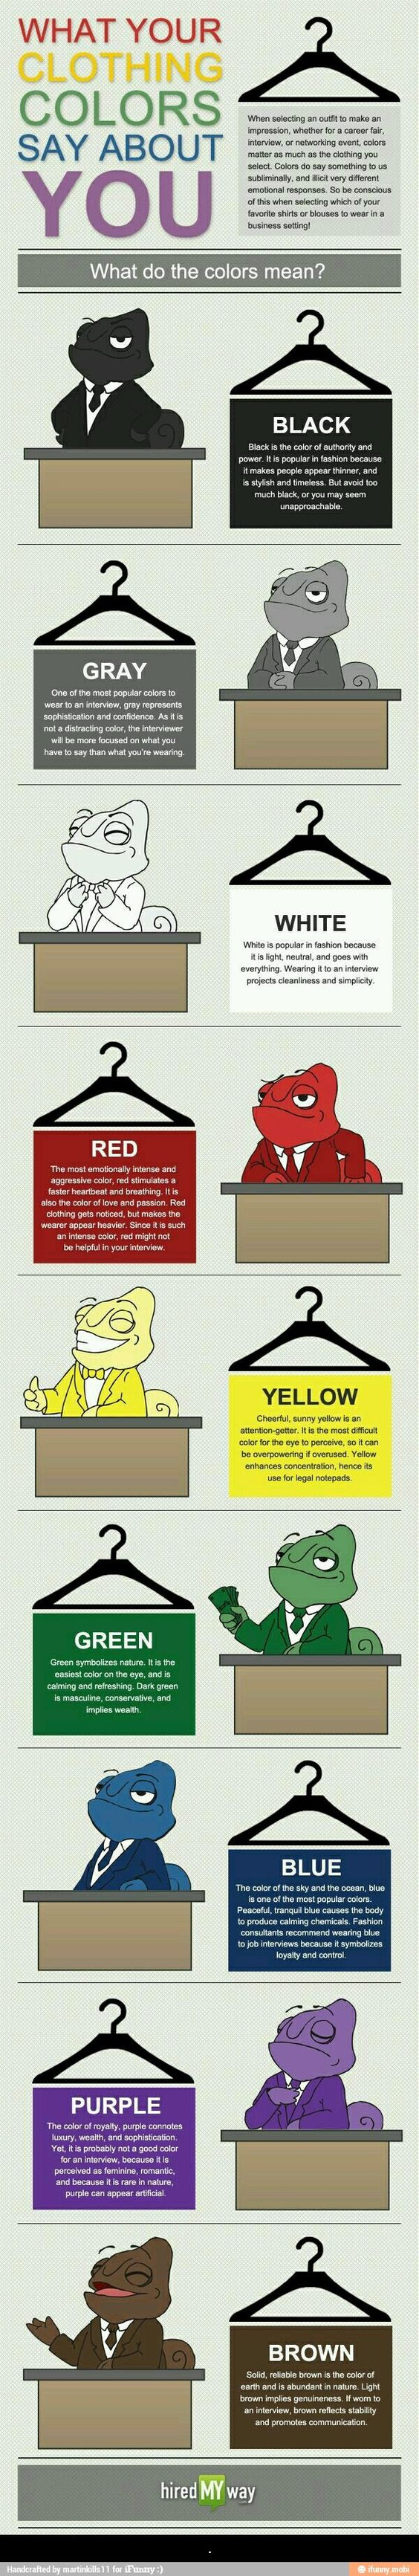 What your clothing colors say about you!